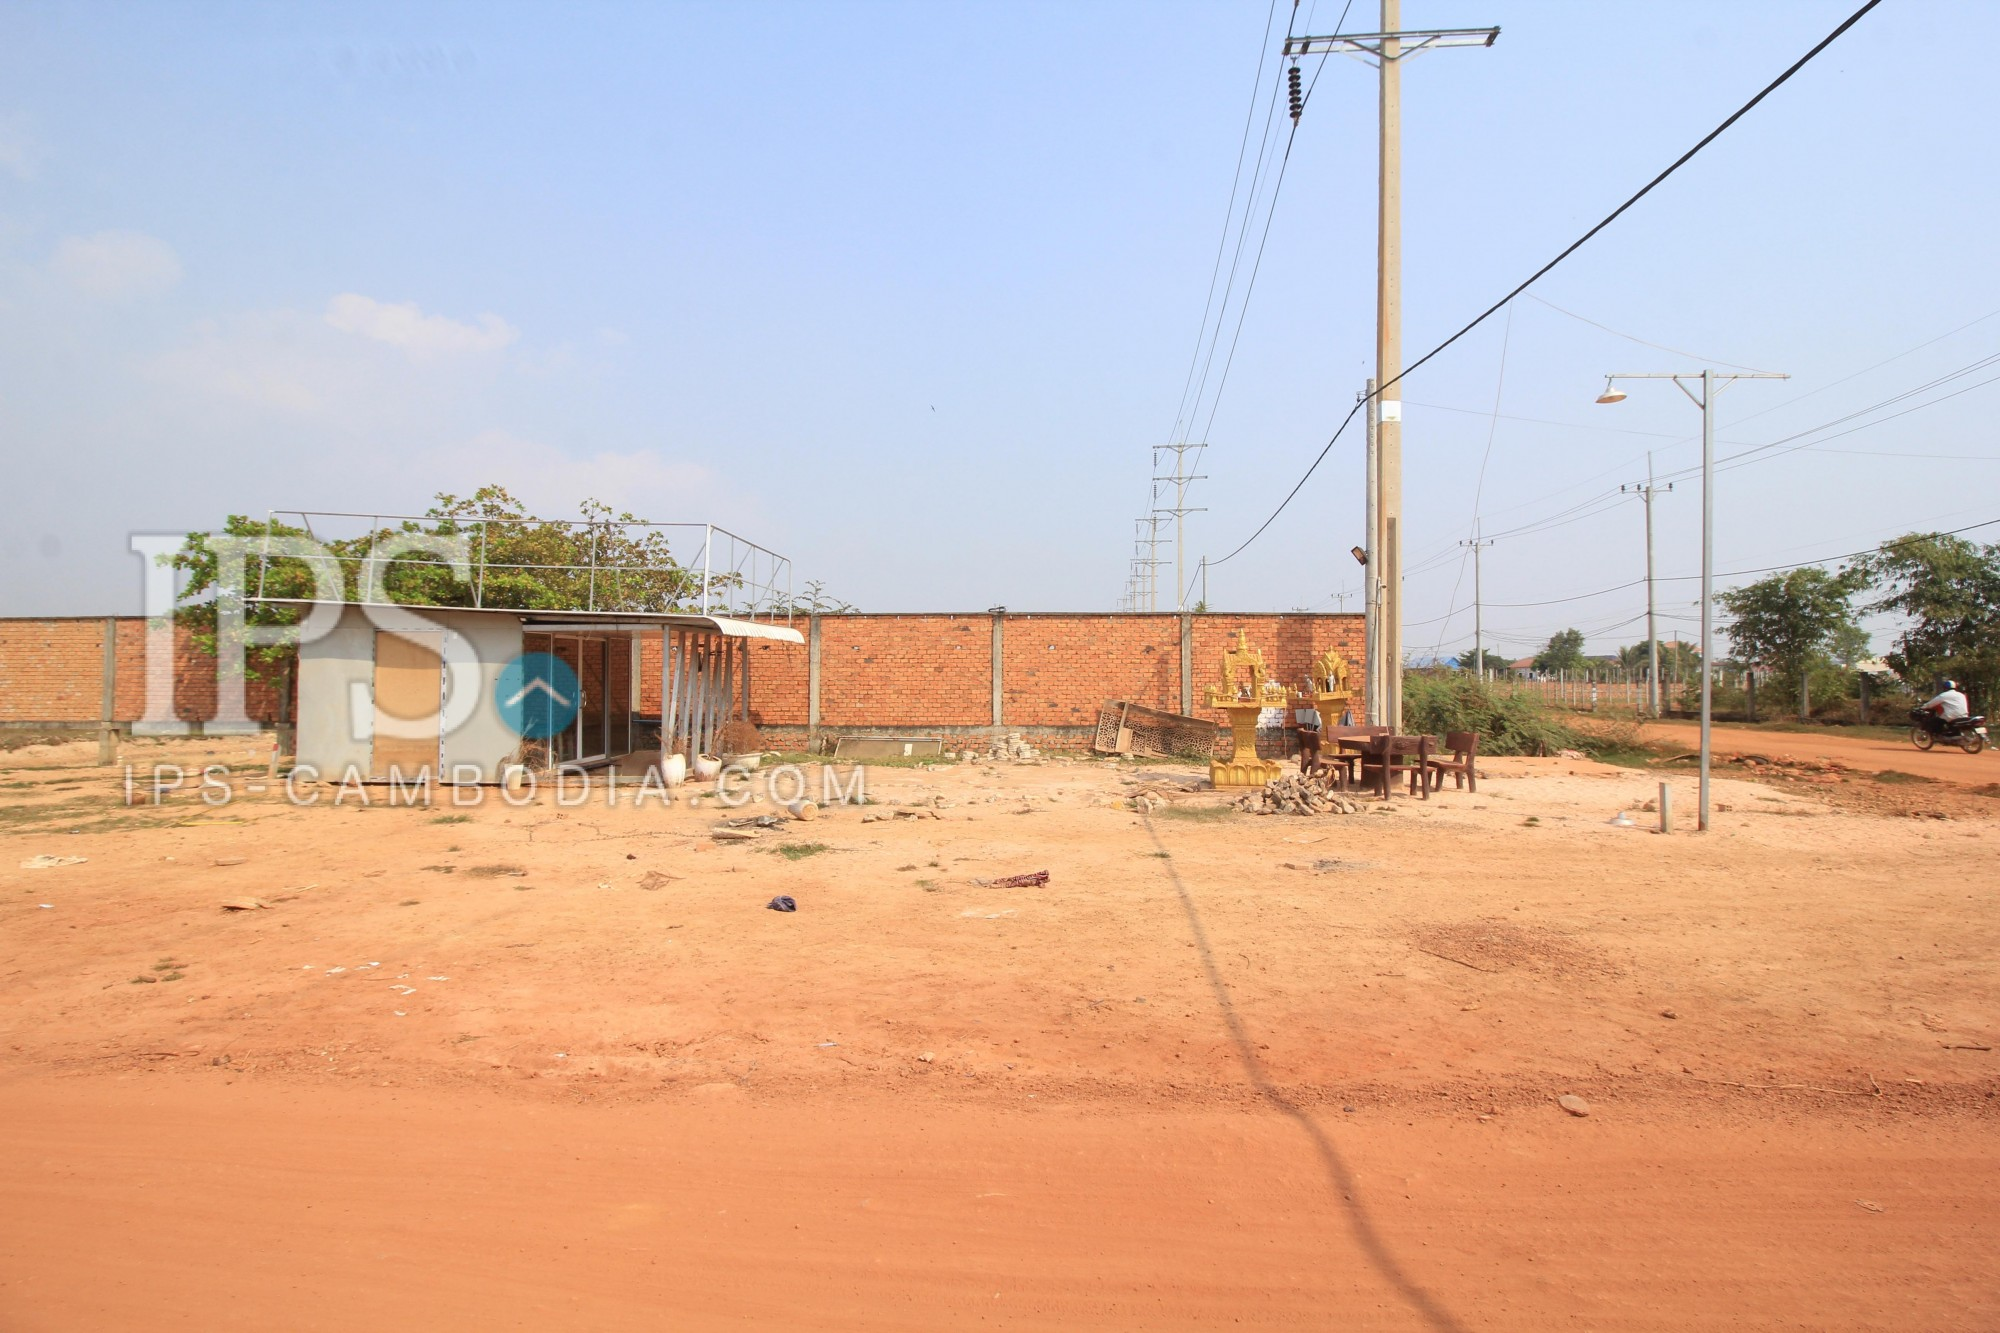 Sub Divided Land for Sale - Chreav